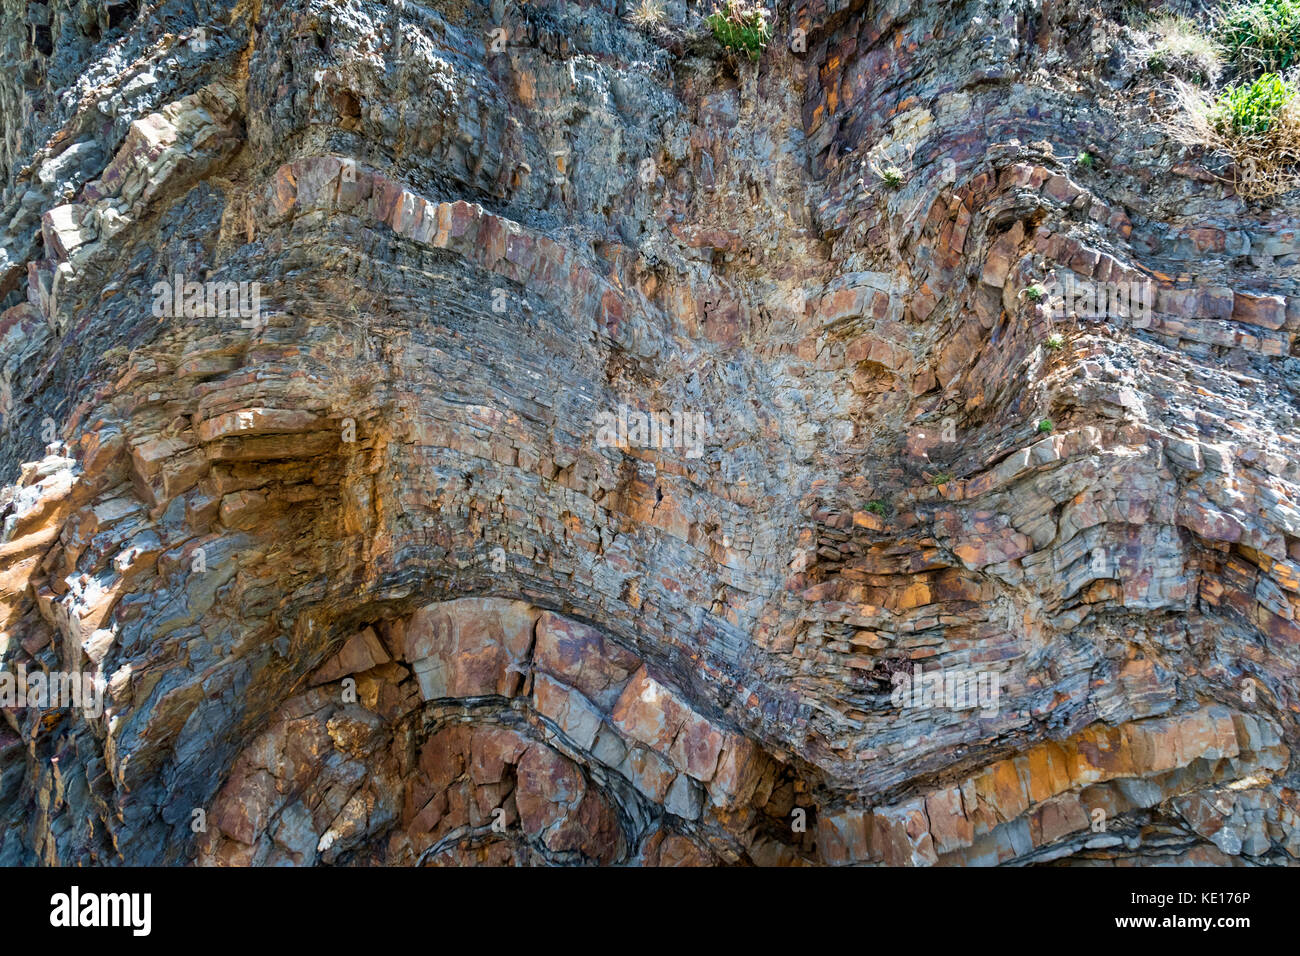 Detailed, Colourful detail of Folds in the Cliff Face at Babbacombe Cliffs on the North Devon Coast Near Bucks Mills. - Stock Image